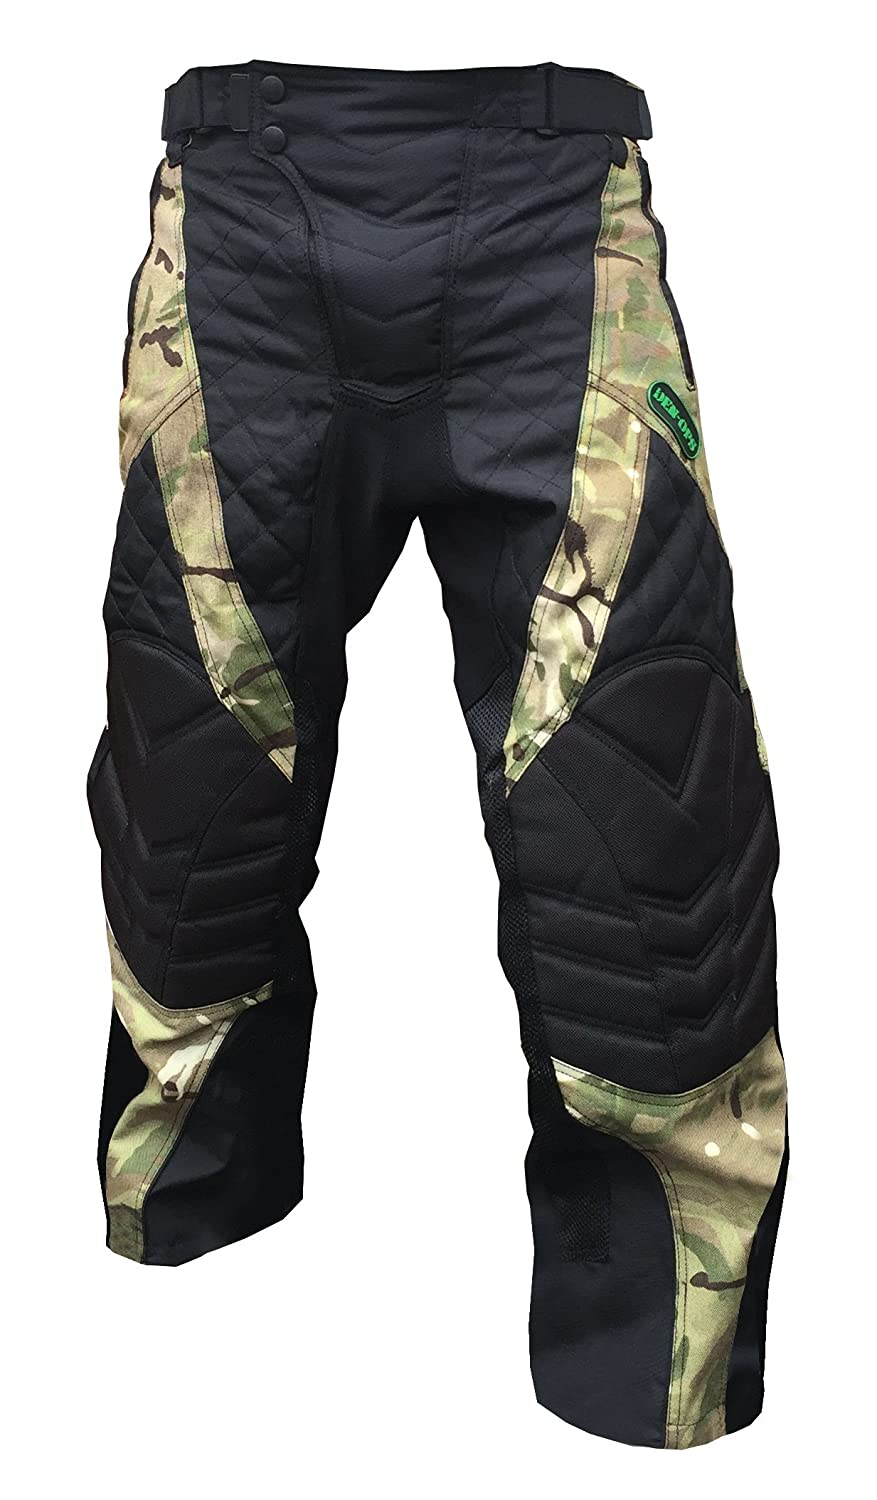 *SALE* CKSN Deniable-Ops Paintball Airsoft Hunting Fishing Pants Black/Desert Camo Trousers Tactical Special Operations Military Paintballing Shooting Clay Metal Detecting - Padded Knees Fully Lined - Lumber Padding and Insulation CKSN Ltd